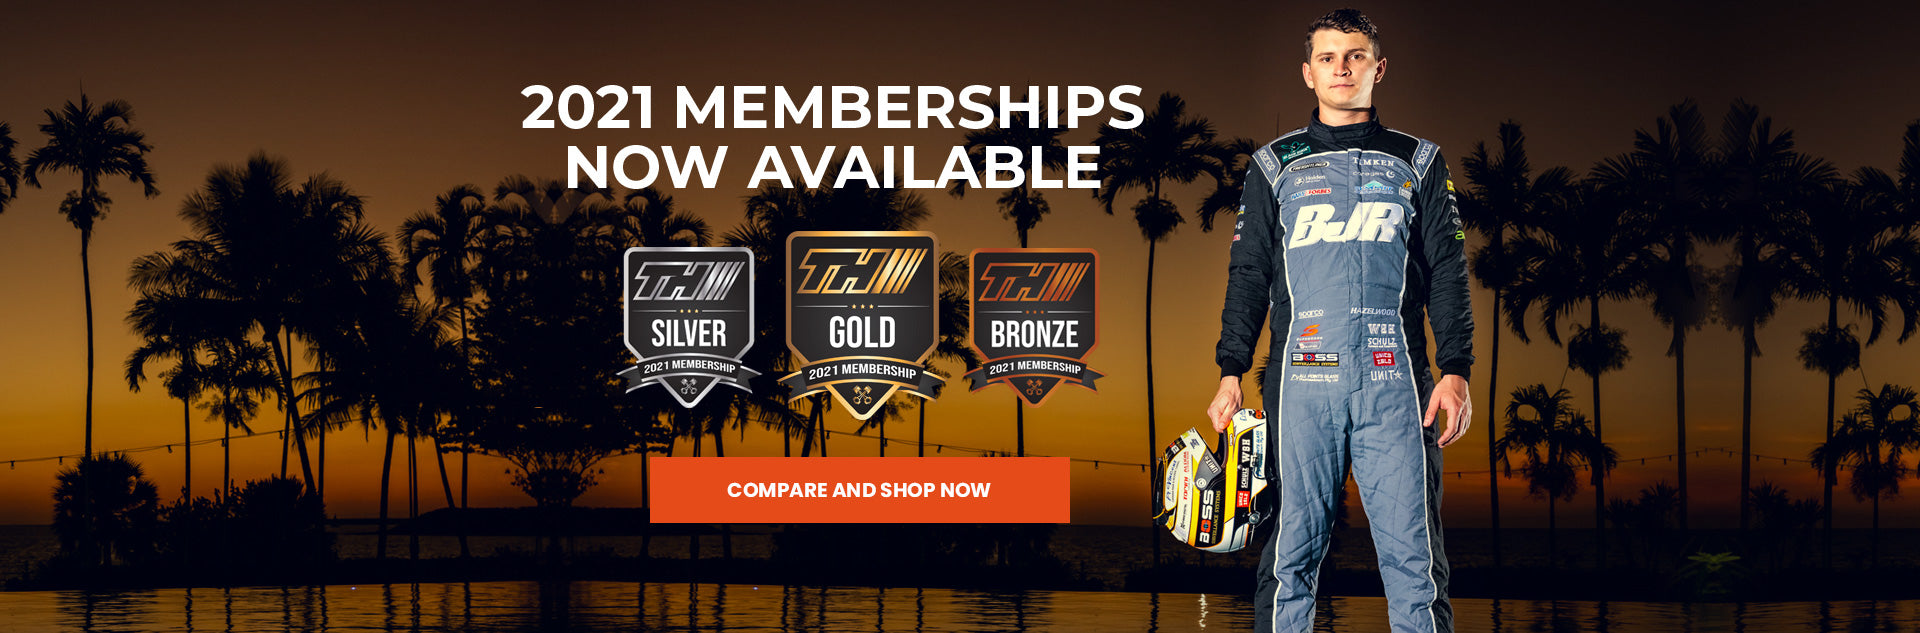 2021 Memberships Now Available